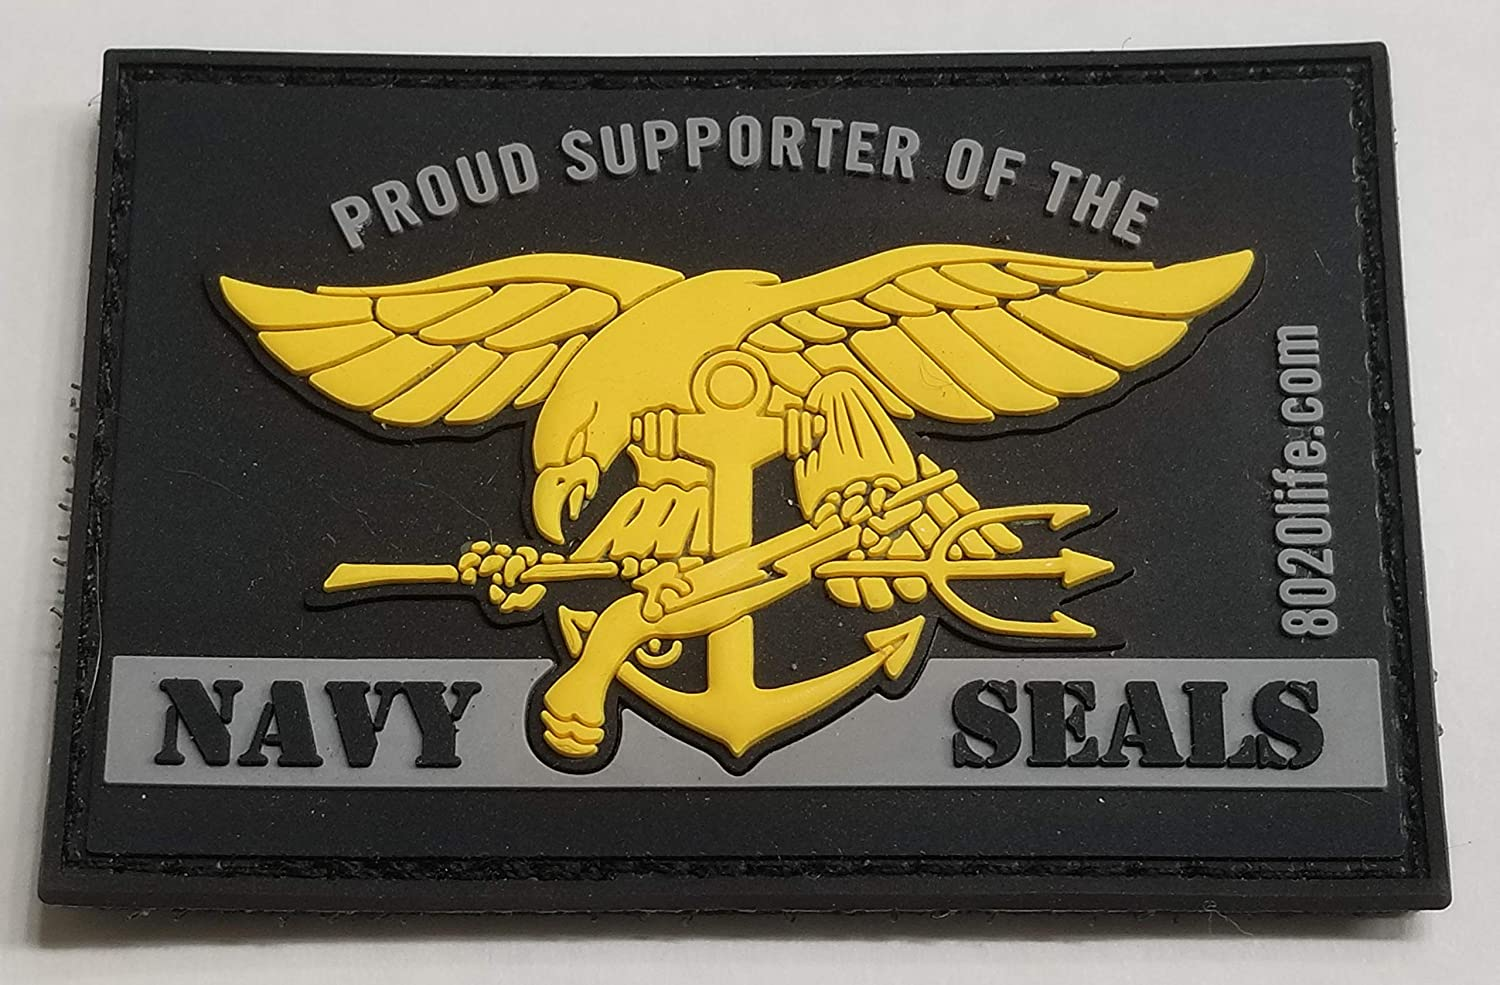 80/20 Life Proud Supporter of The Navy Seals PVC Morale Patch